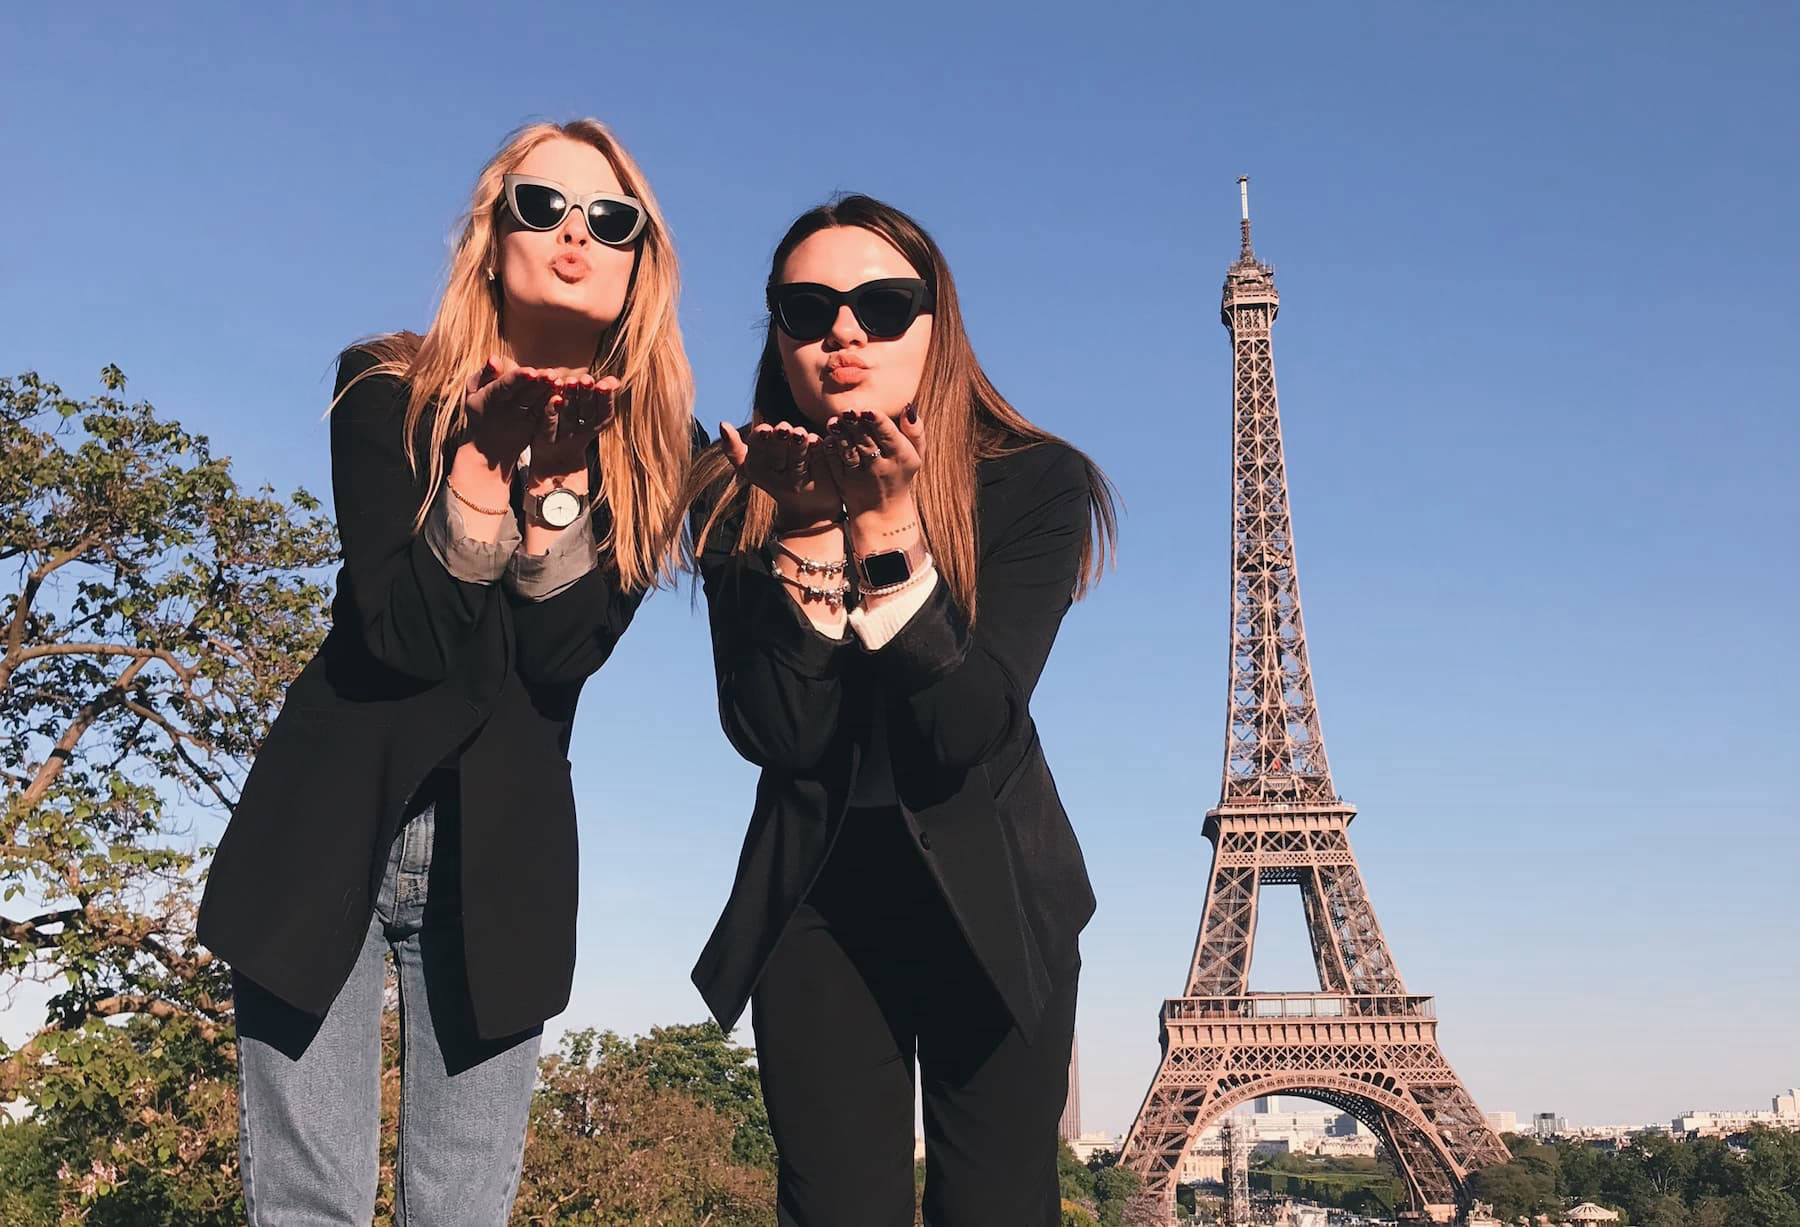 Two women stood in front of Eiffel Tower blowing kisses